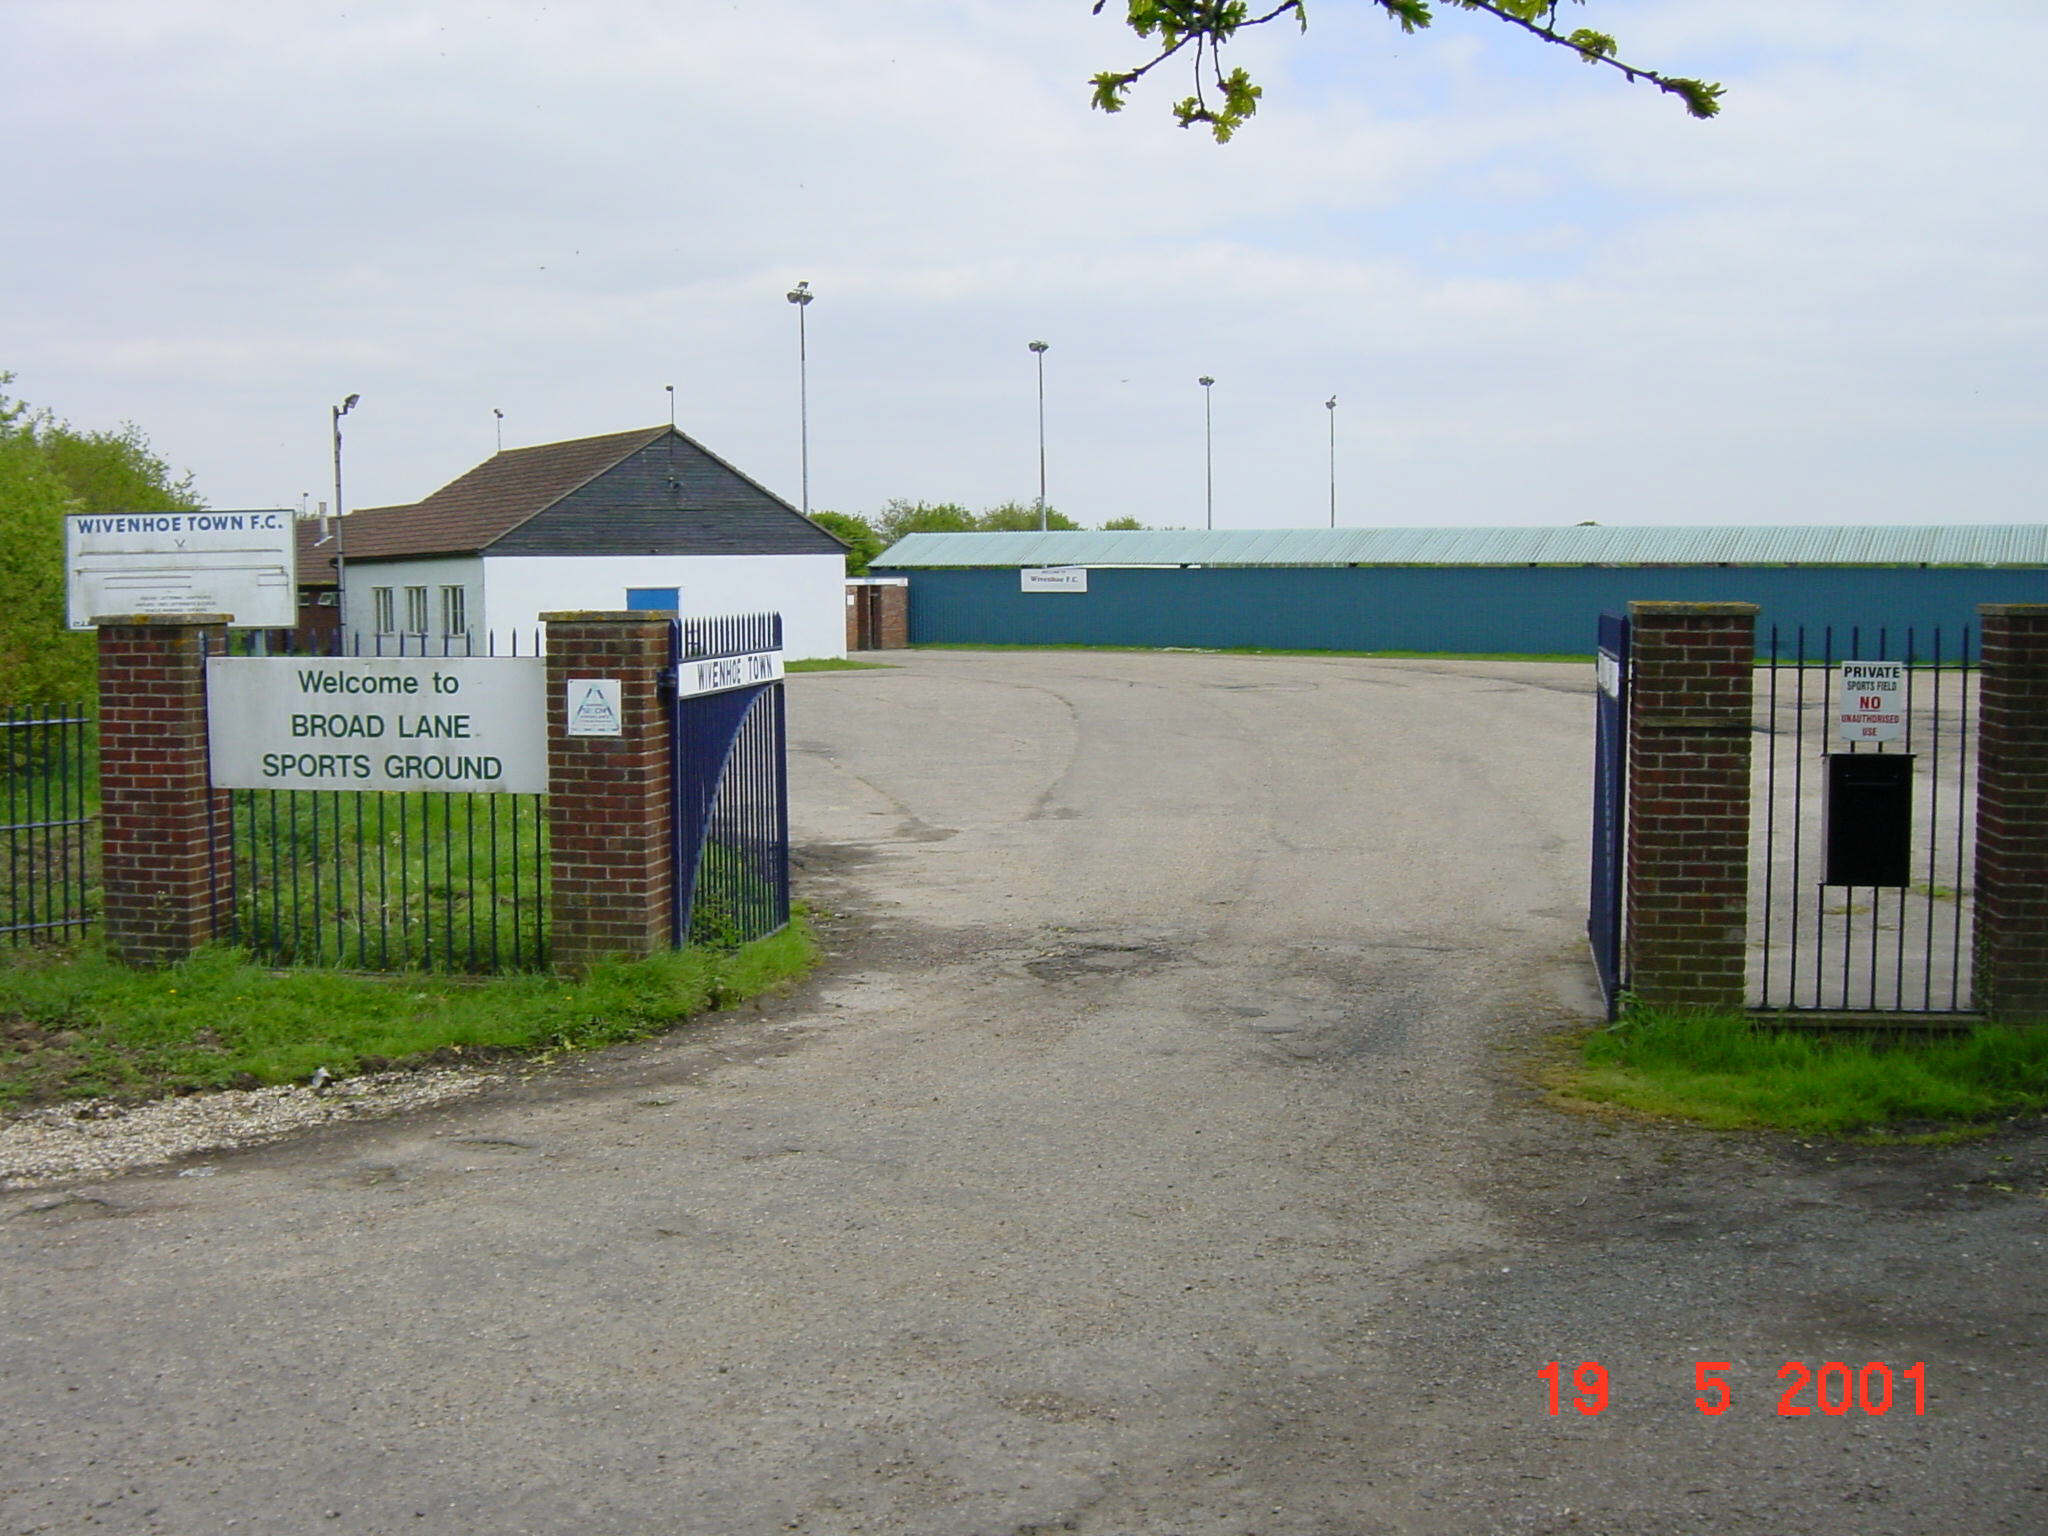 The entrance to Broad Lane Sports Ground